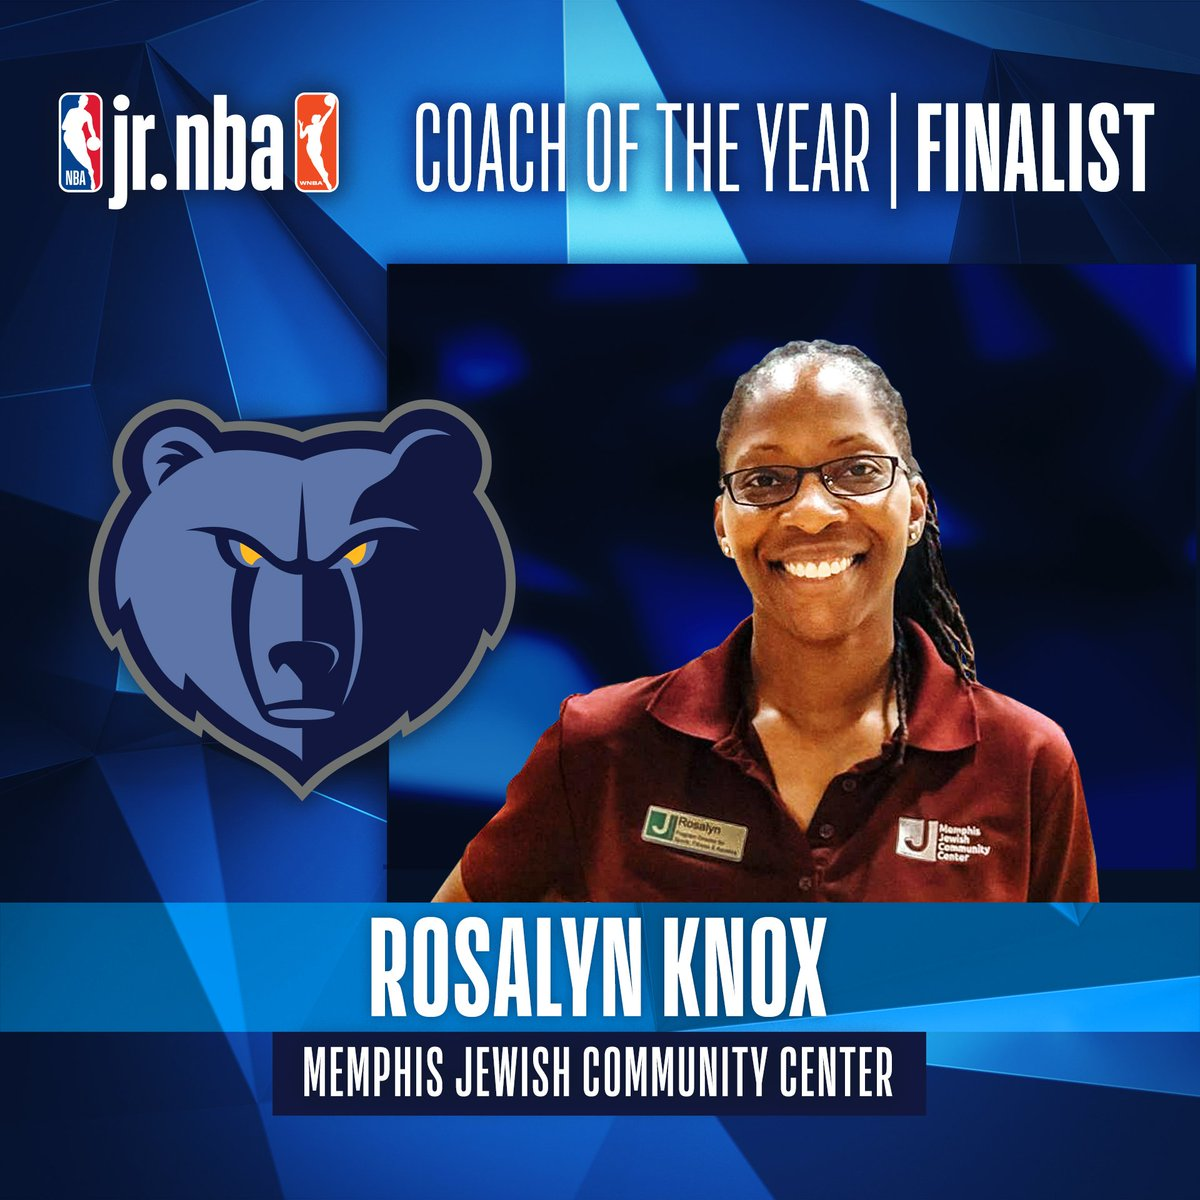 A finalist for 2019 #JrNBACOY is Rosalyn Knox. Coach Rosalyn is an activator of multiple @memgrizz Youth Basketball initiatives! Jr. NBA Coach of the Year will be announced at the Jr. NBA Youth Basketball Leadership Conference on May 17! More:… http://srhlink.com/R4jcNy